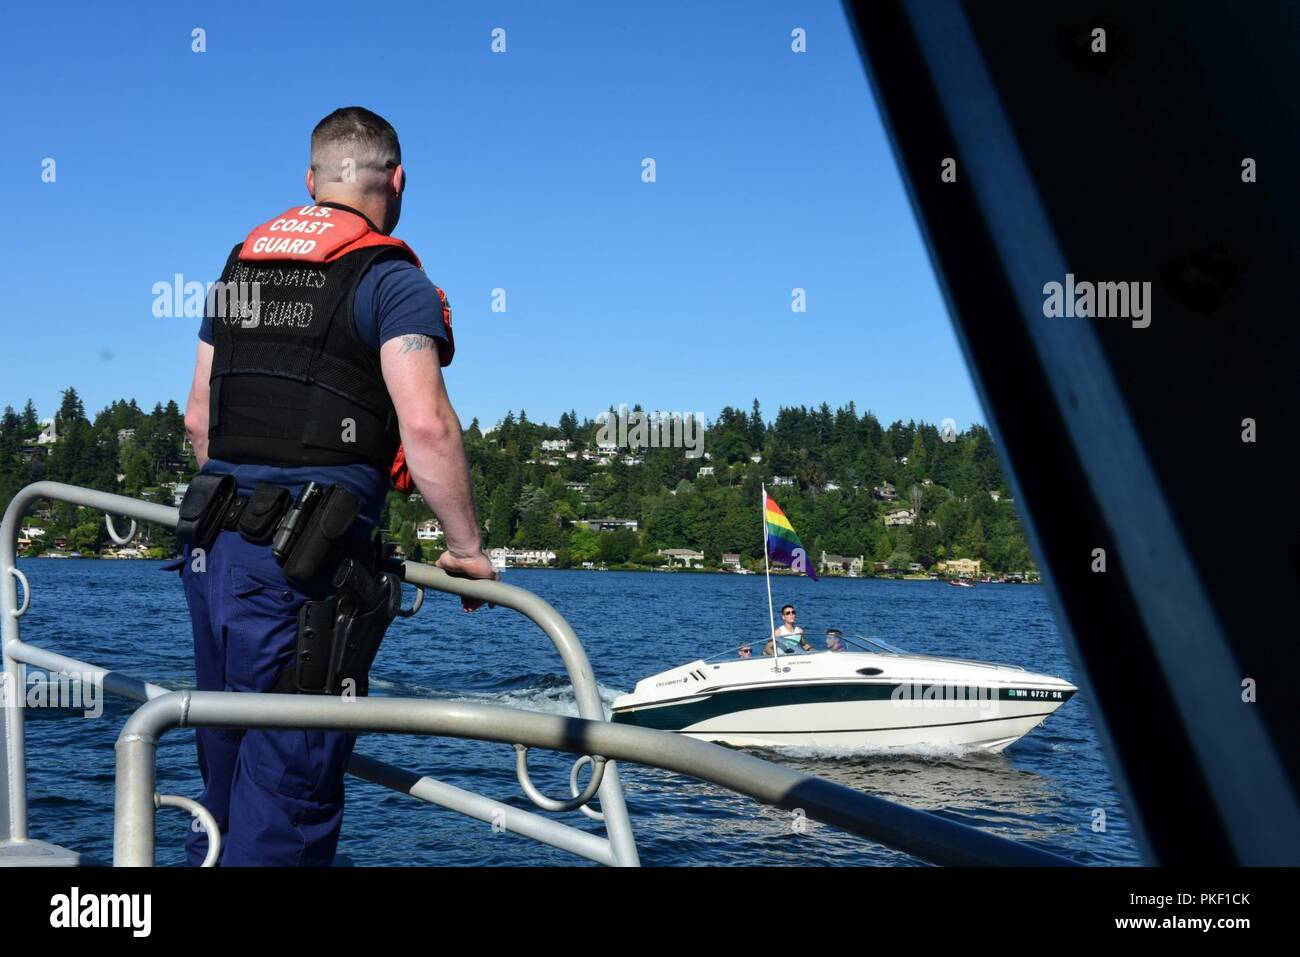 Coast Guard Petty Officer 2nd Class Preston McKernan (left) and Petty Officer 2nd Class Andrew Yester, conduct patrols on Lake Washington, Aug. 4, 2018. Coast Guard crews worked with federal and local law enforcement partners to address boaters operating under the influence of alcohol and drugs. U.S. Coast Guard - Stock Image